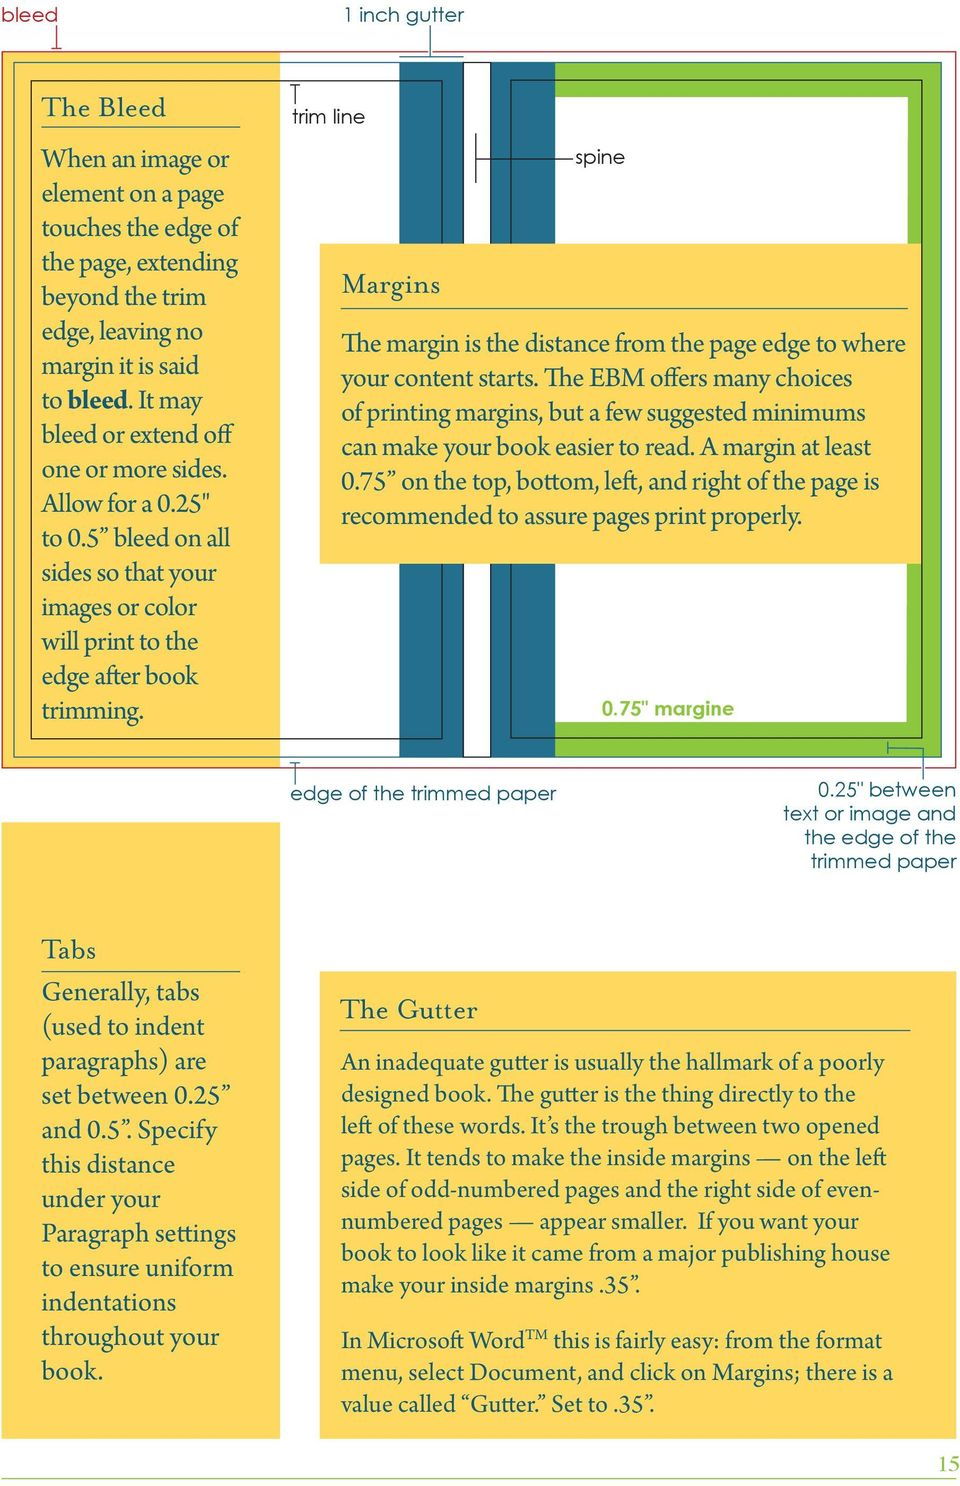 trim line Margins spine The margin is the distance from the page edge to where your content starts.